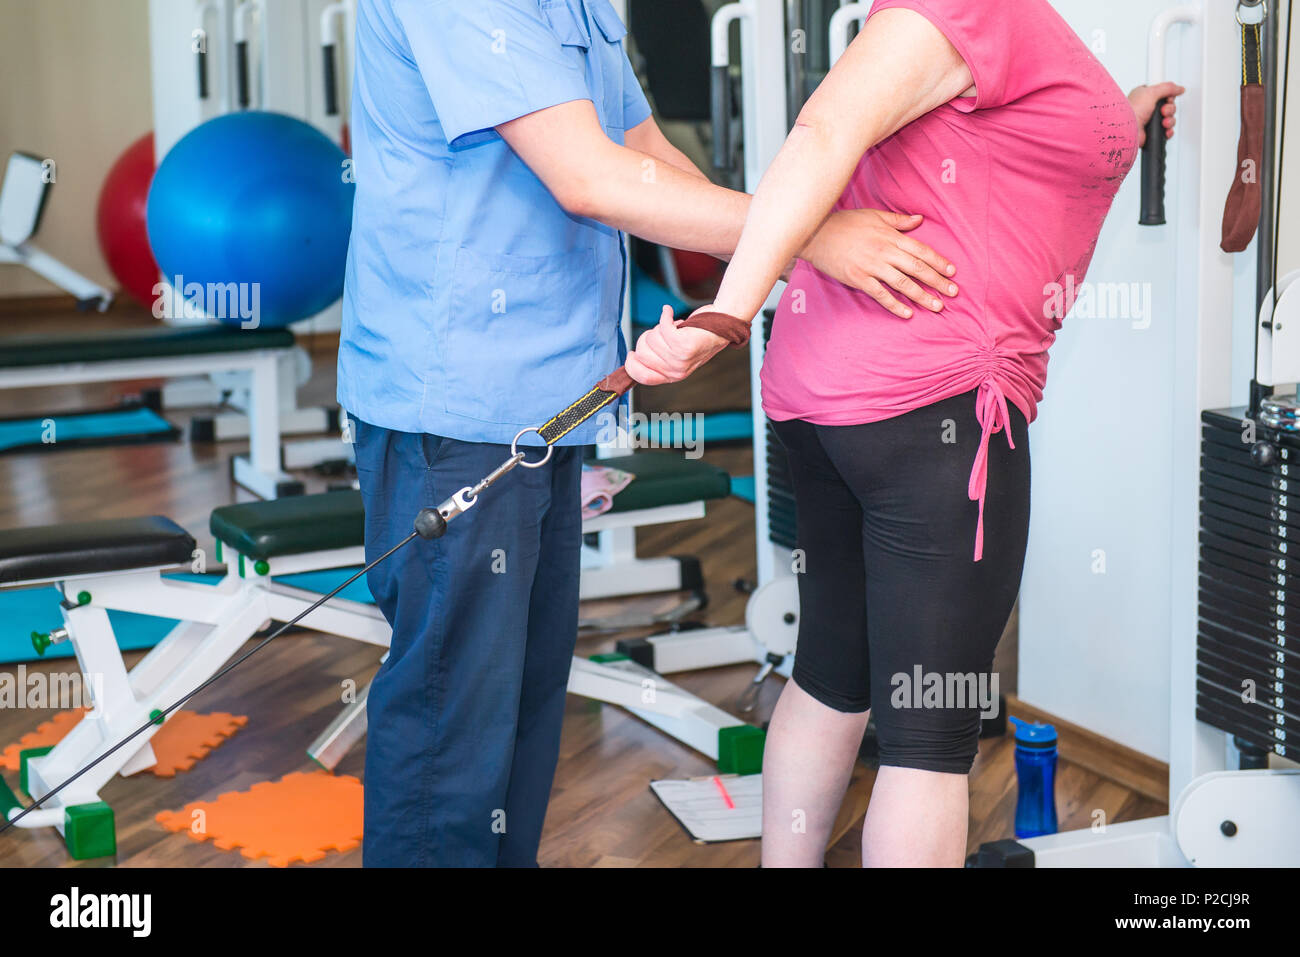 No face elderly woman doing active, special exercises guided by physical therapist at the hospital rehabilitation center. Osteopathy, chiropractic, ph - Stock Image